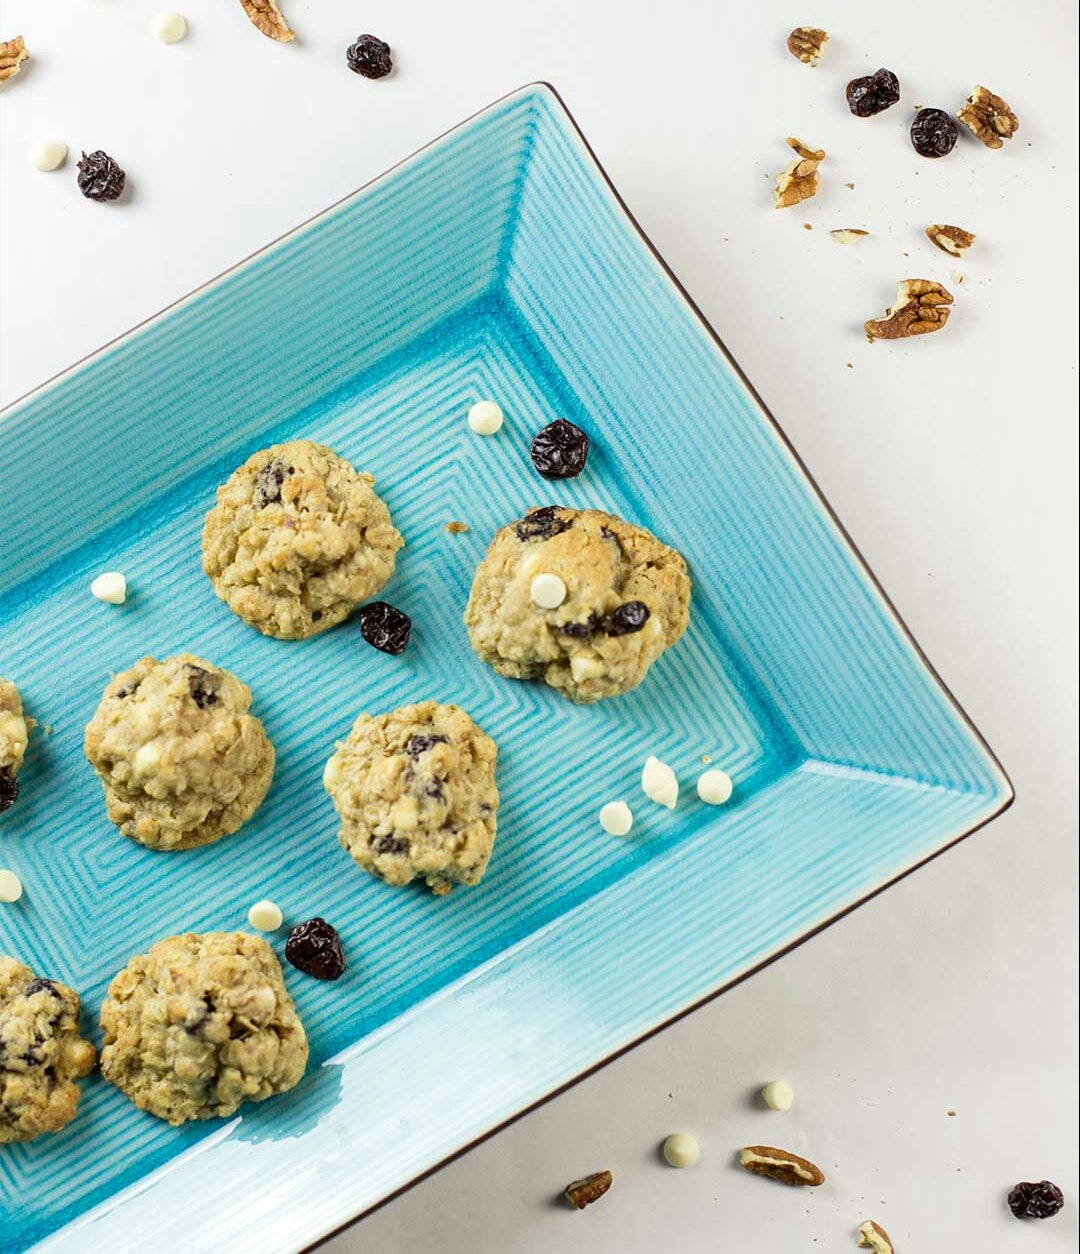 White Chocolate Chip Cookies with Oats and Cherries